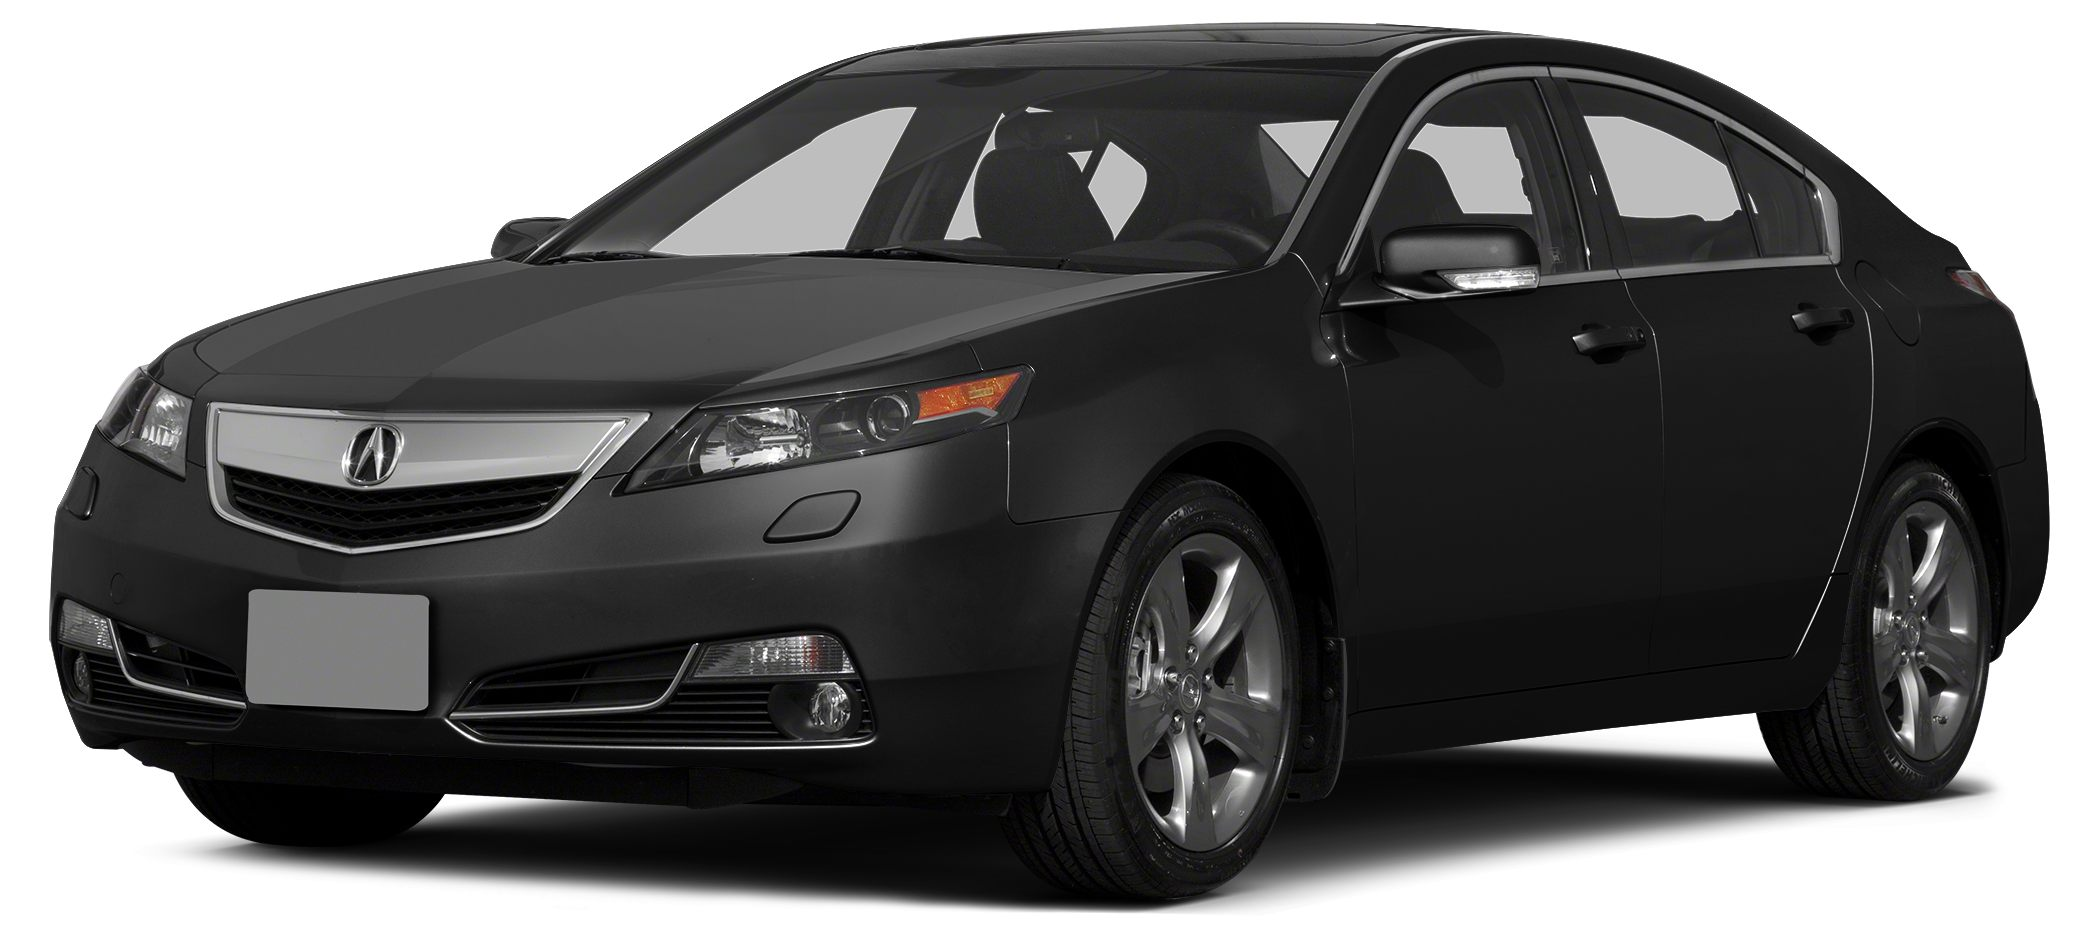 2014 Acura TL 35 Technology Want to save some money Get the NEW look for the used price on this